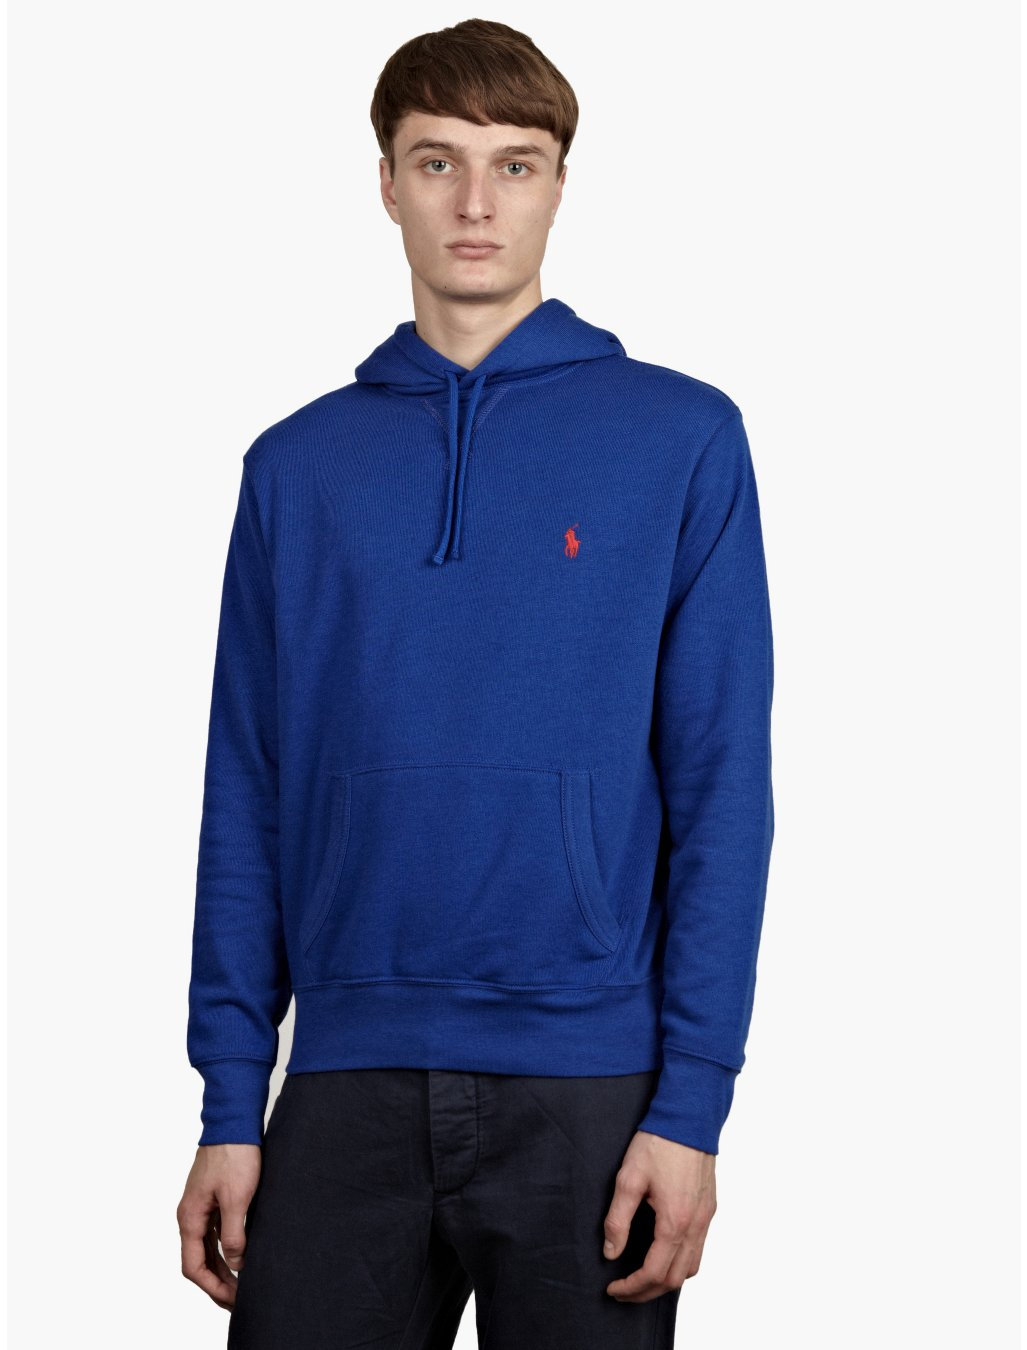 polo ralph lauren mens royal blue hoodie in blue for men lyst. Black Bedroom Furniture Sets. Home Design Ideas